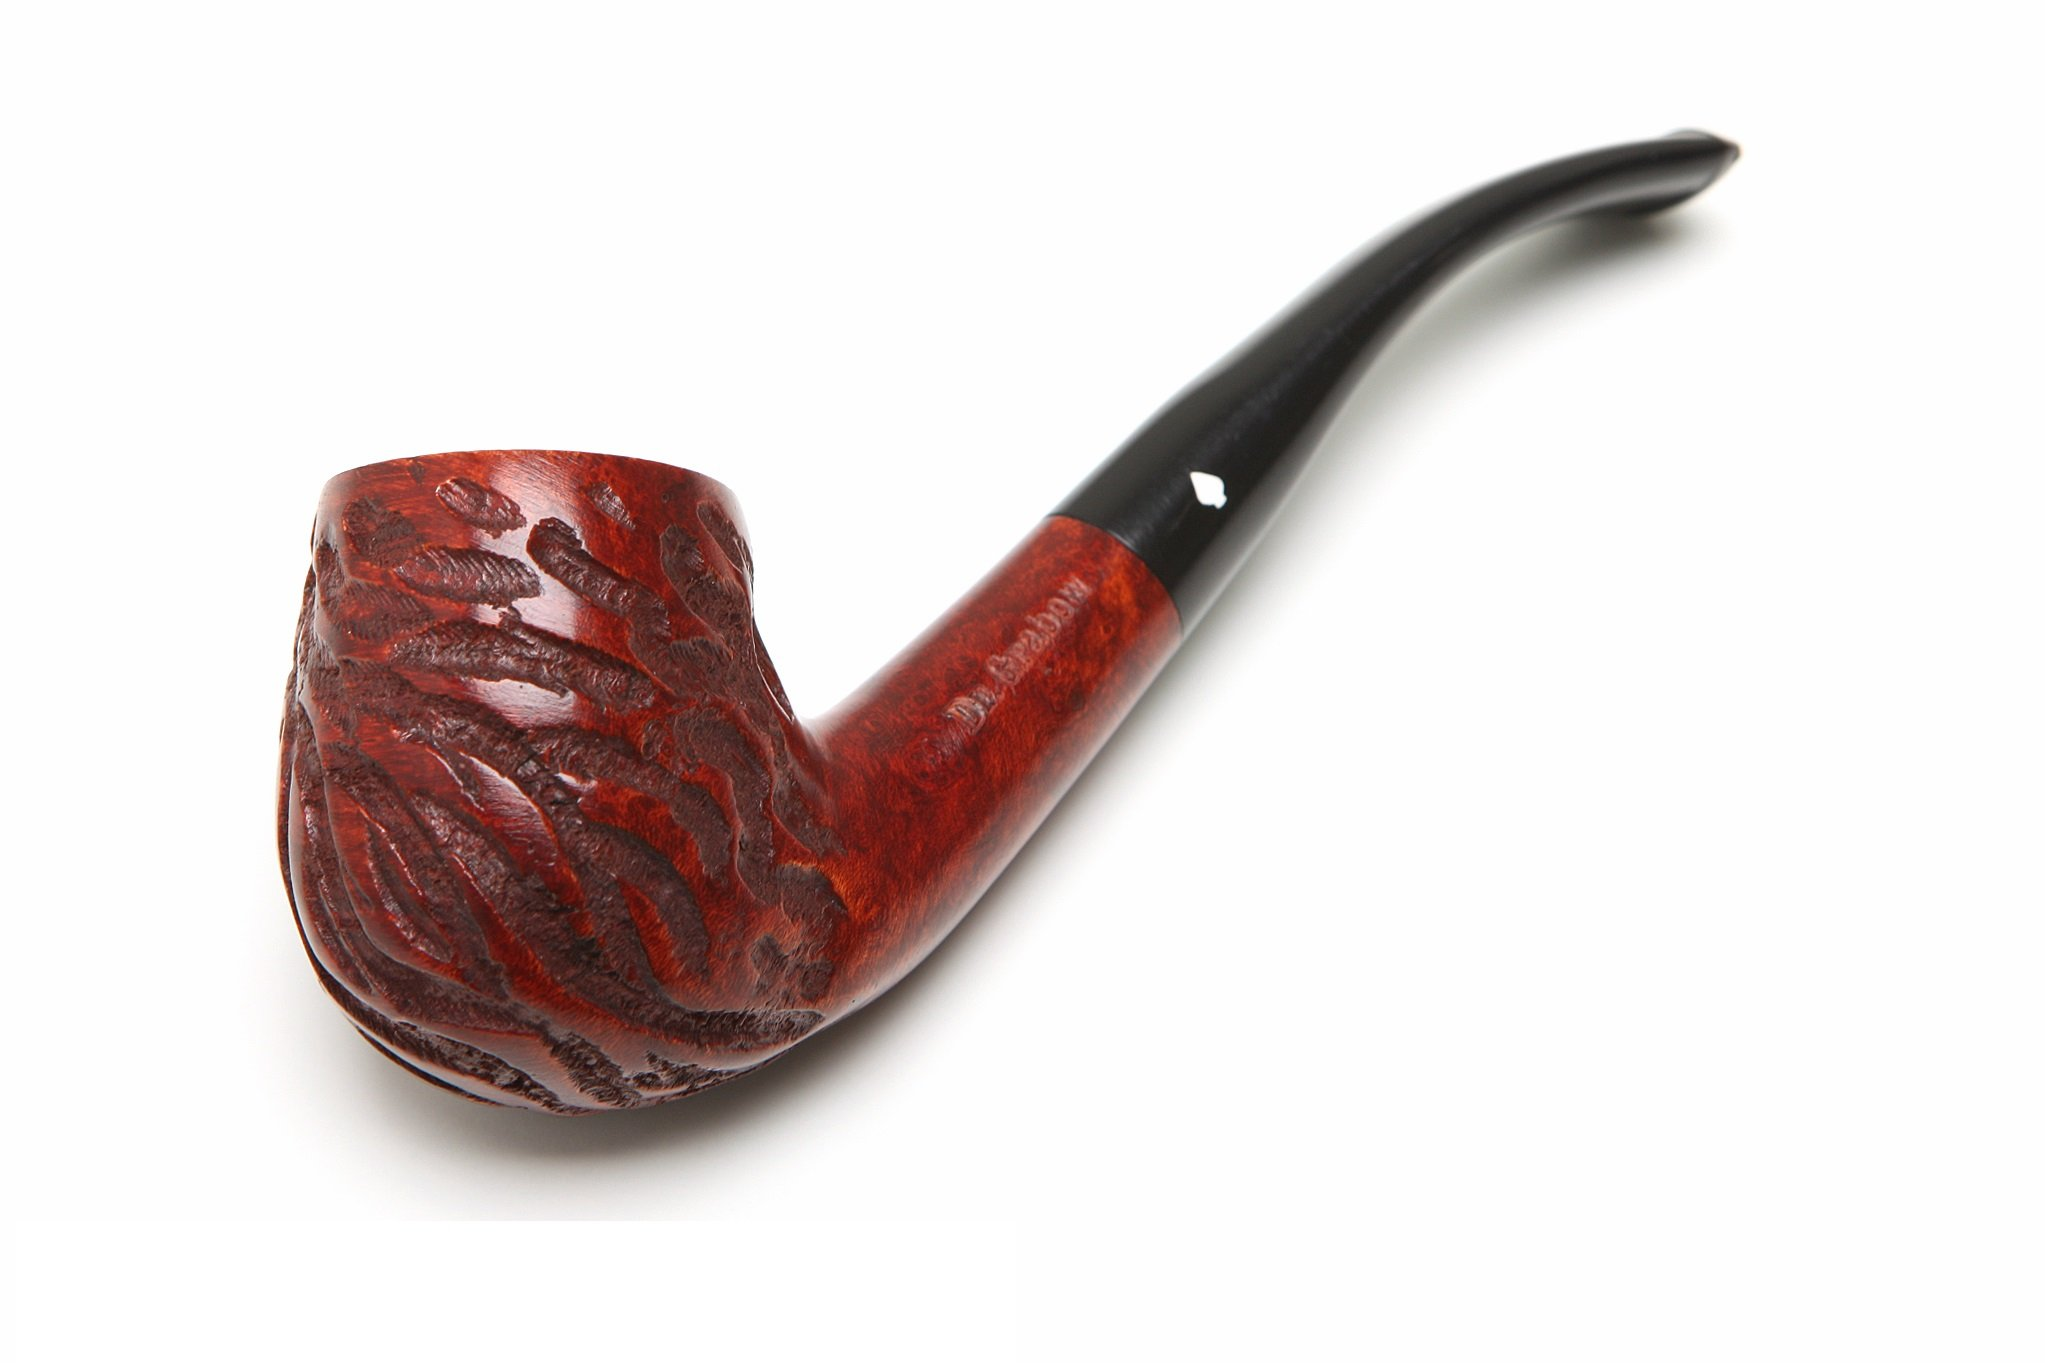 Dr Grabow Full Bent Rustic Tobacco Pipe by Dr. Grabow